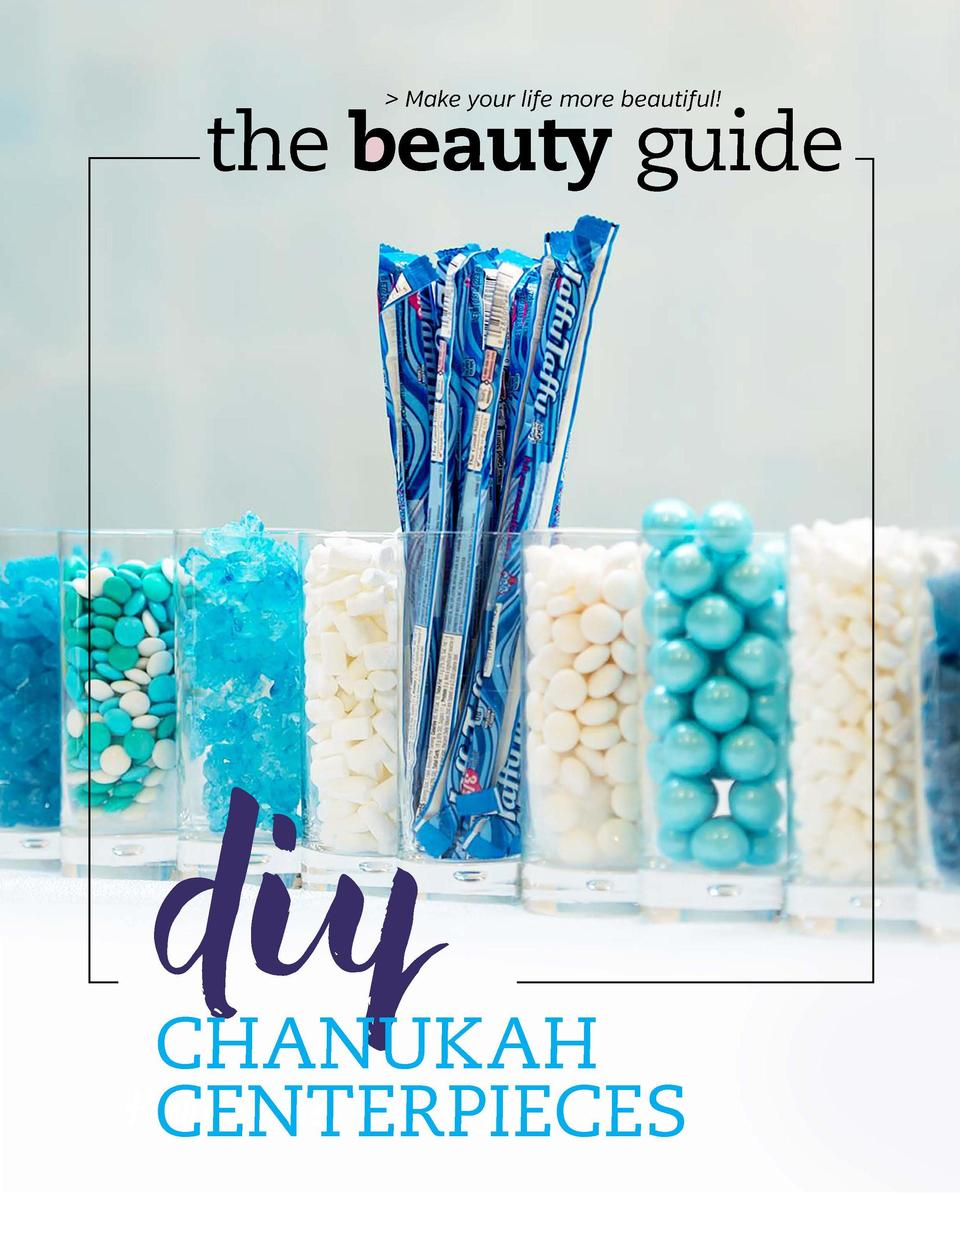 BEAUTY GUIDE OPENER    Make your life more beautiful   the beauty guide  diy  CHANUKAH Fashion Must-Haves N CENTERPIECES  ...